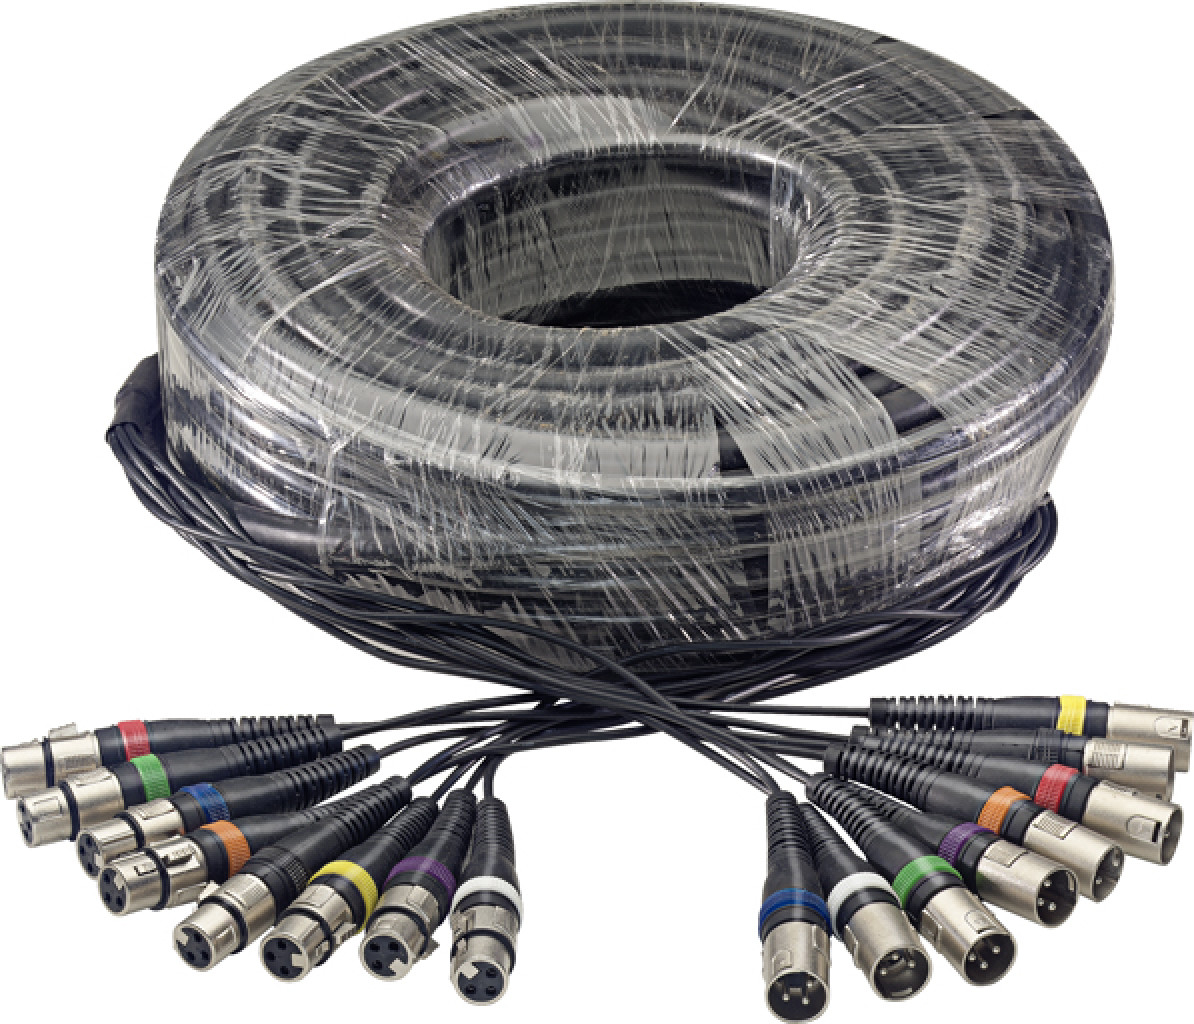 30 m/100 ft. Multicore Cable - 8 x f. XLR/8 x m